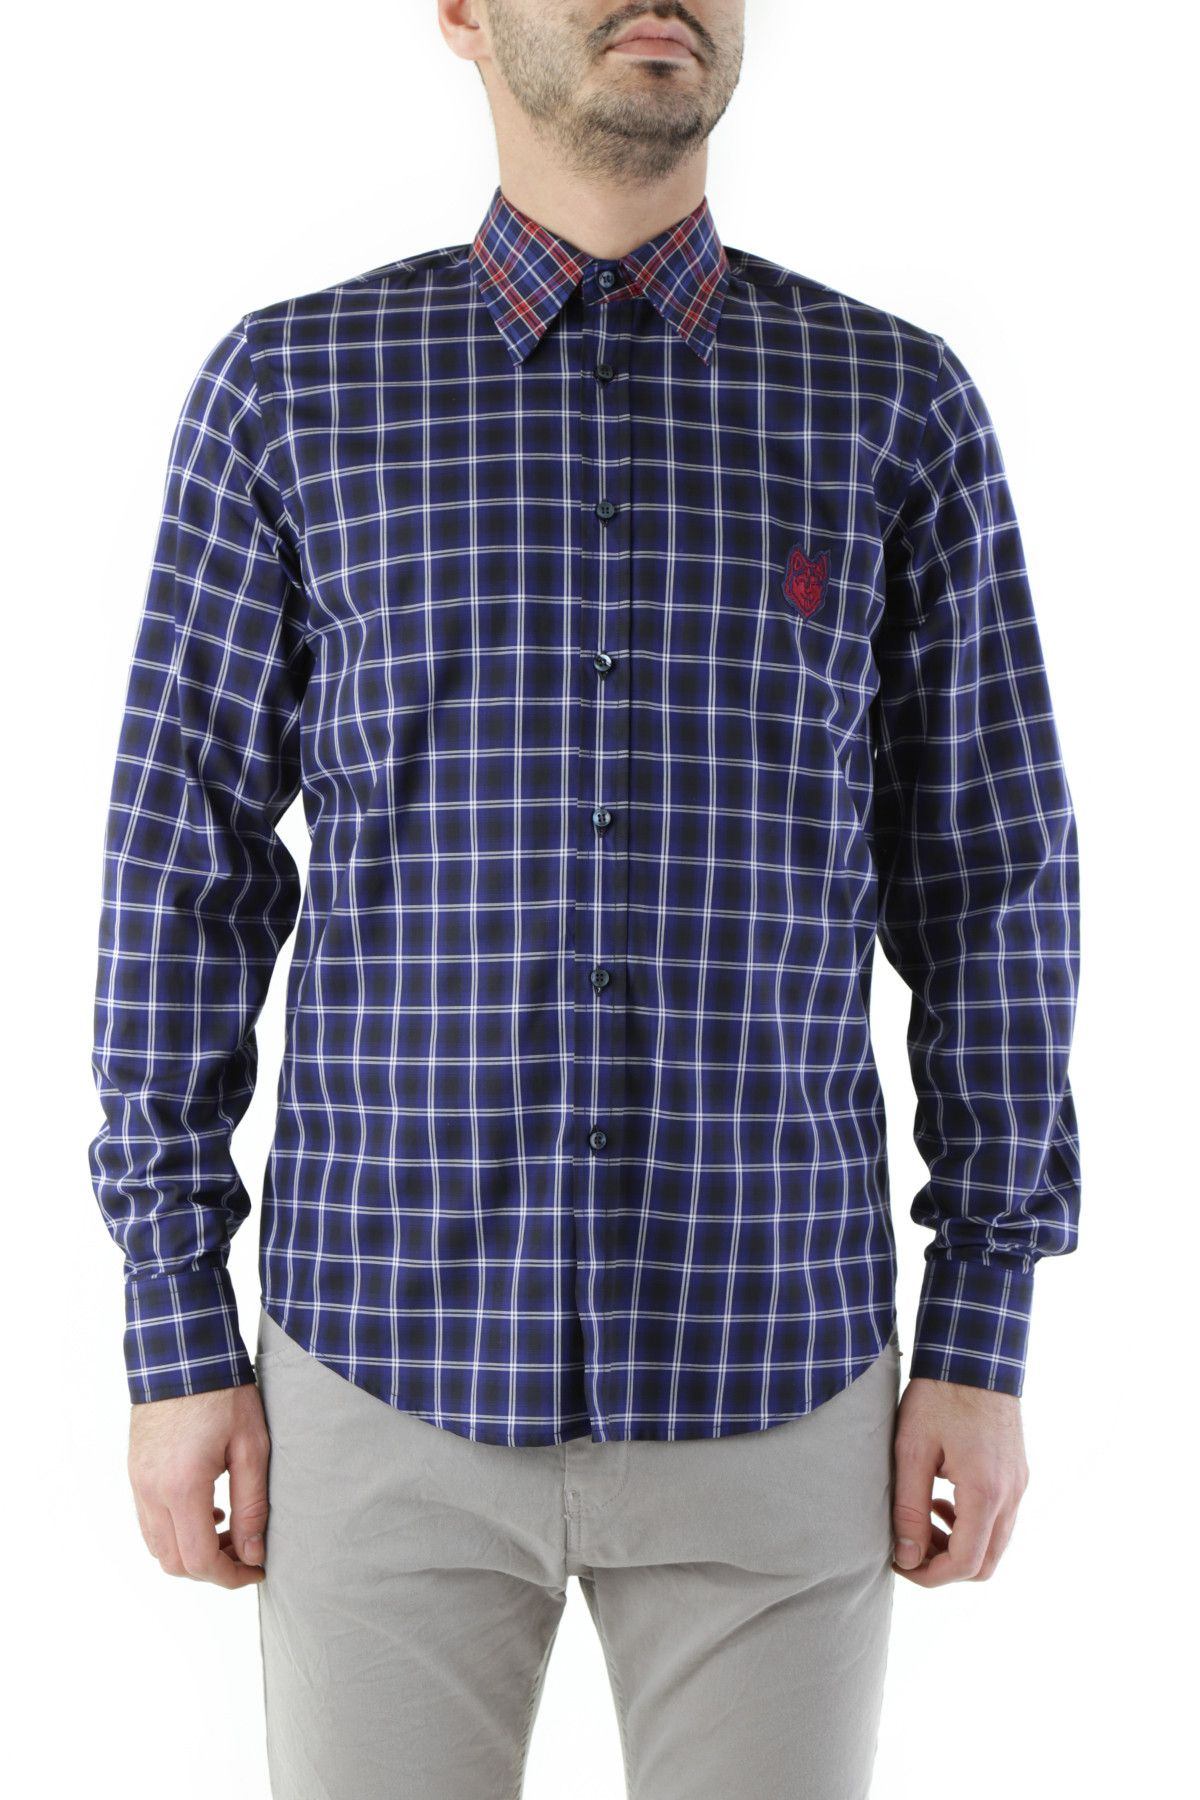 Husky Men's Shirt In Blue